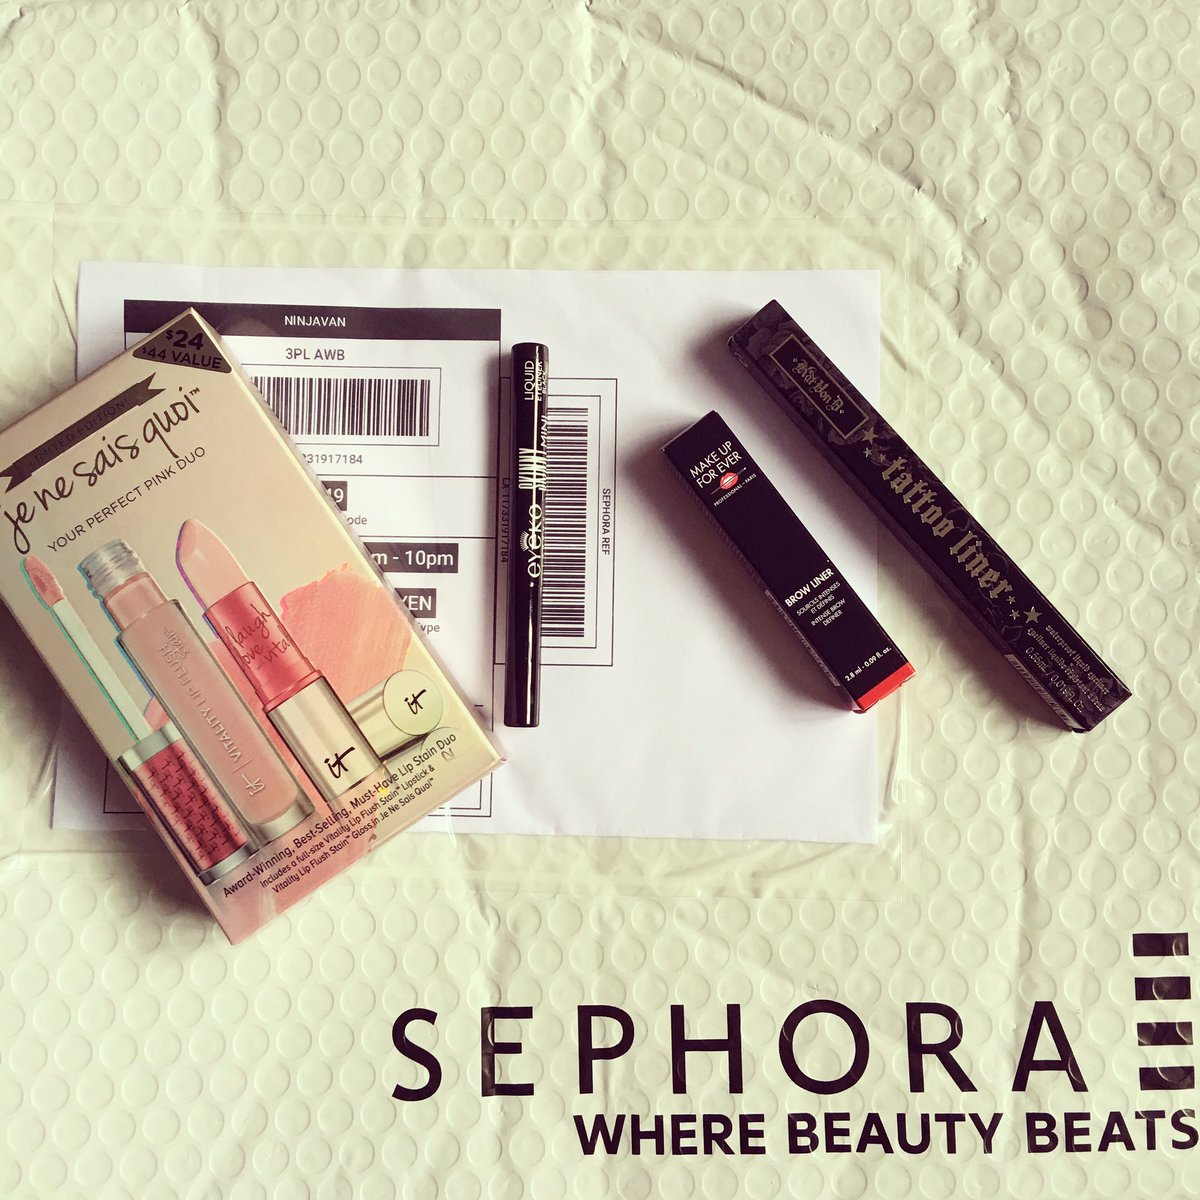 My #sephora package has arrived but they left out my #katvond #liquidlipstick! Ugh. #bittersweet #sephorasg #onlineshopping #sephoraonline <br>http://pic.twitter.com/LSQR4oLINi